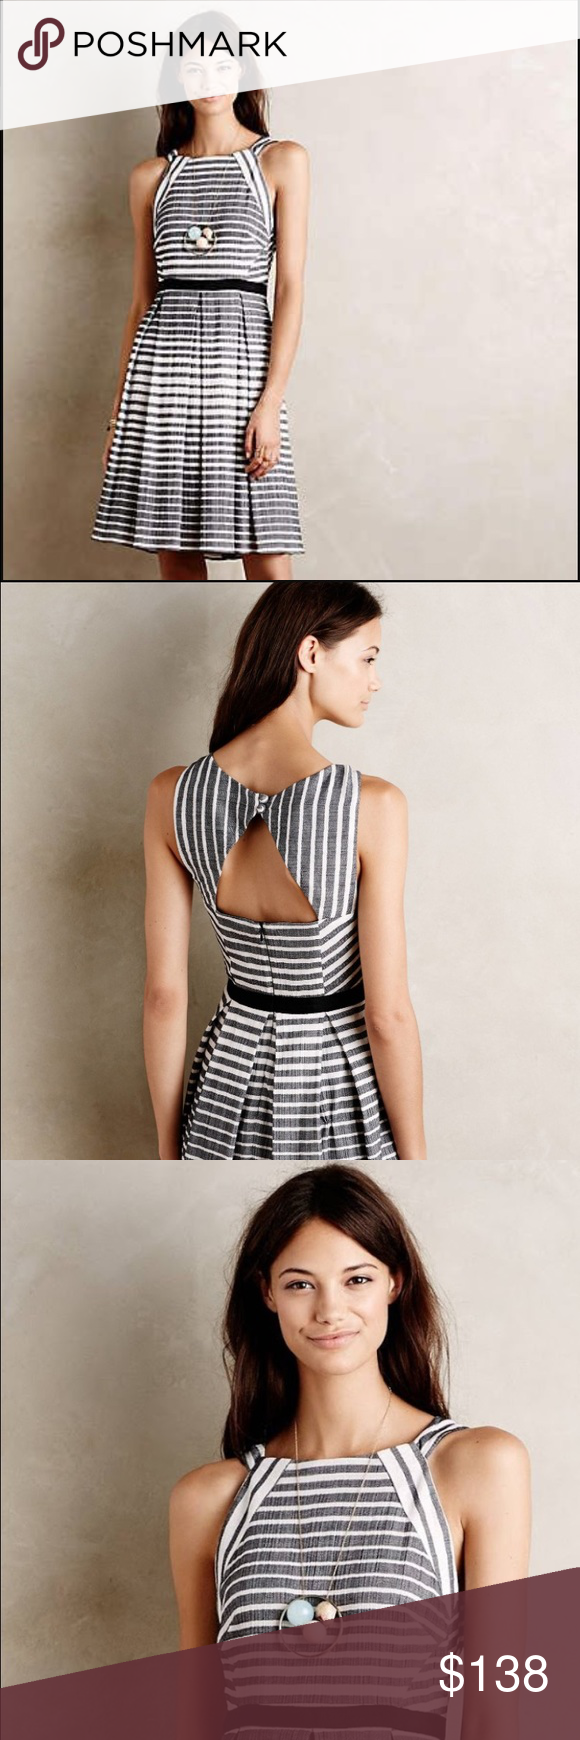 Anthropologie Eva Franco Saybrook Stripe Dress Business in the front and part in the back with this spectacular striped cutout! True to Eva Franco's alluring and flattering designs; this dress dons a high collar and a cute cutout in the back. With heavier cotton material and fully lined, this dress is perfectly on point for Fall. Dazzle at work or play. Button enclosure in back, with a back zipper. Worn once. Anthropologie Dresses Midi